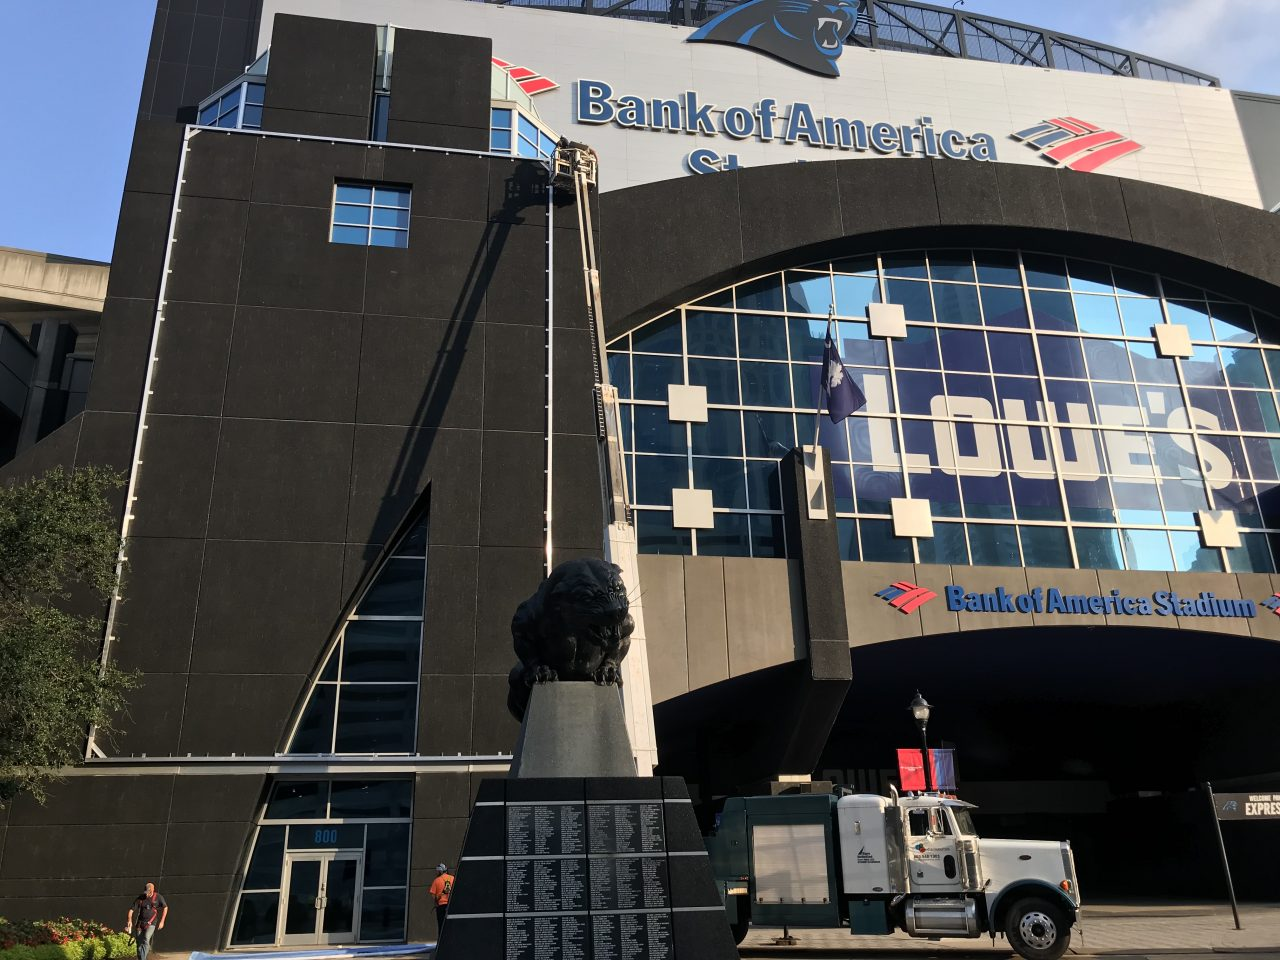 Installation of Frameless Frame banners at the Bank of America Stadium in Charlotte, NC